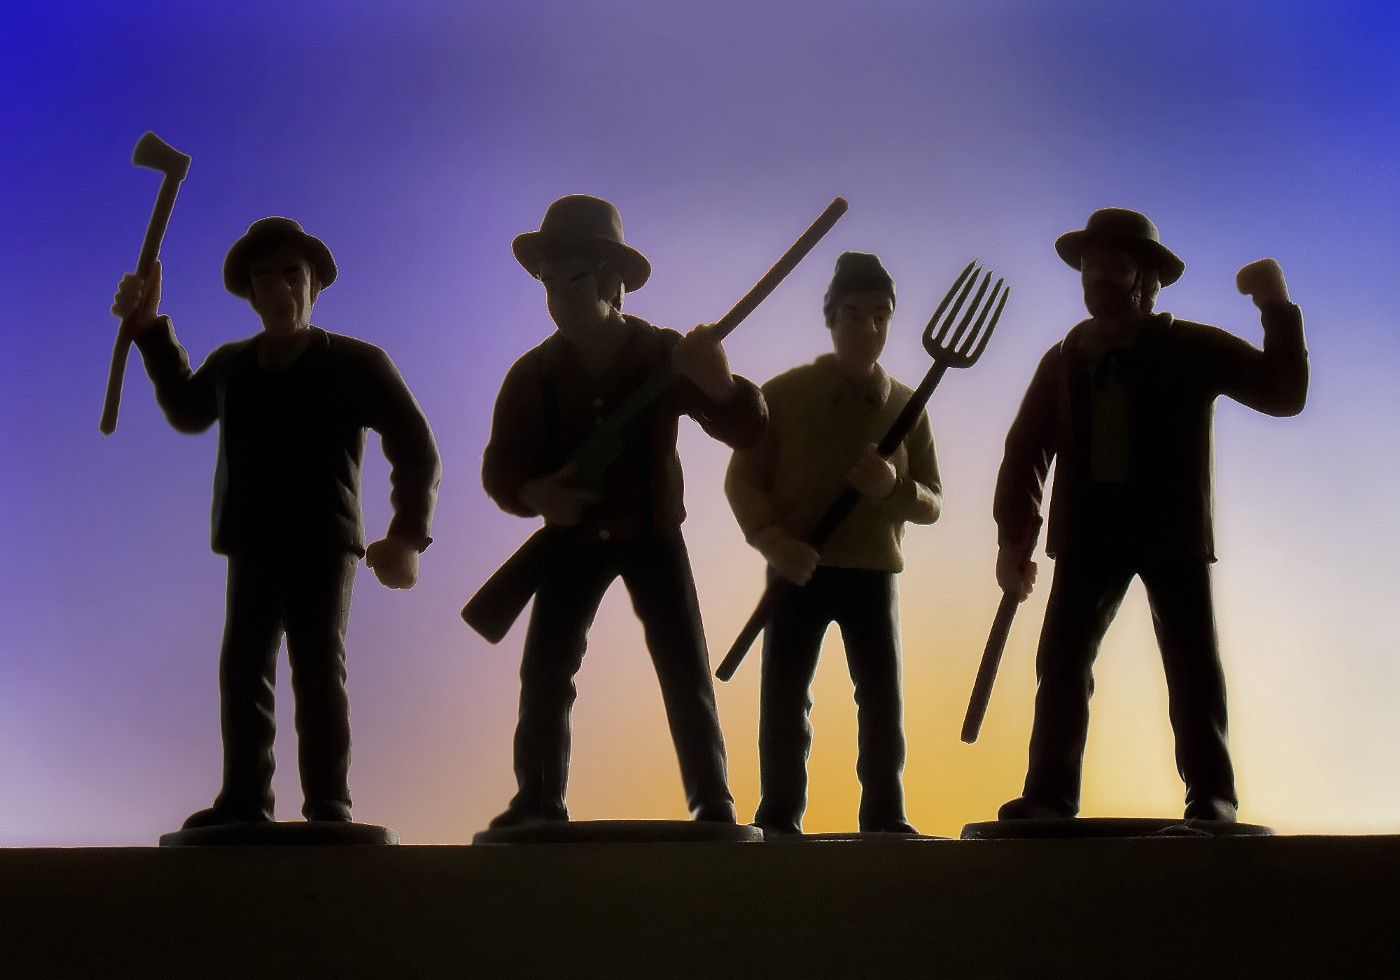 Four men, perhaps farmers, make angry gestures while holding an axe, rifle, pitchfork and stick.